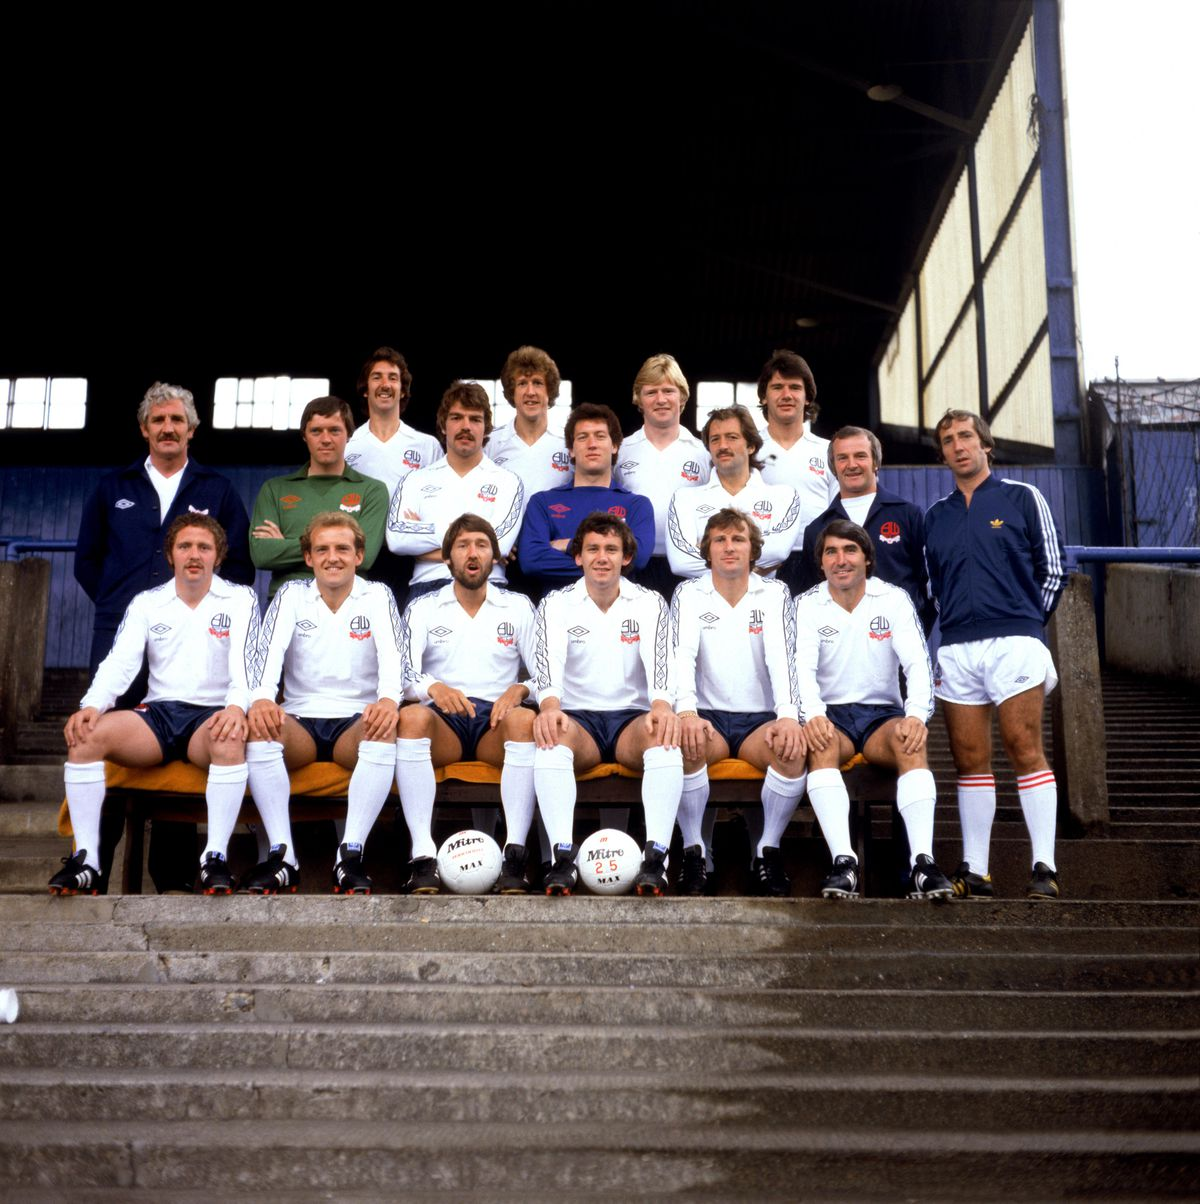 Soccer - Football League Division One - Bolton Wanderers Photocall